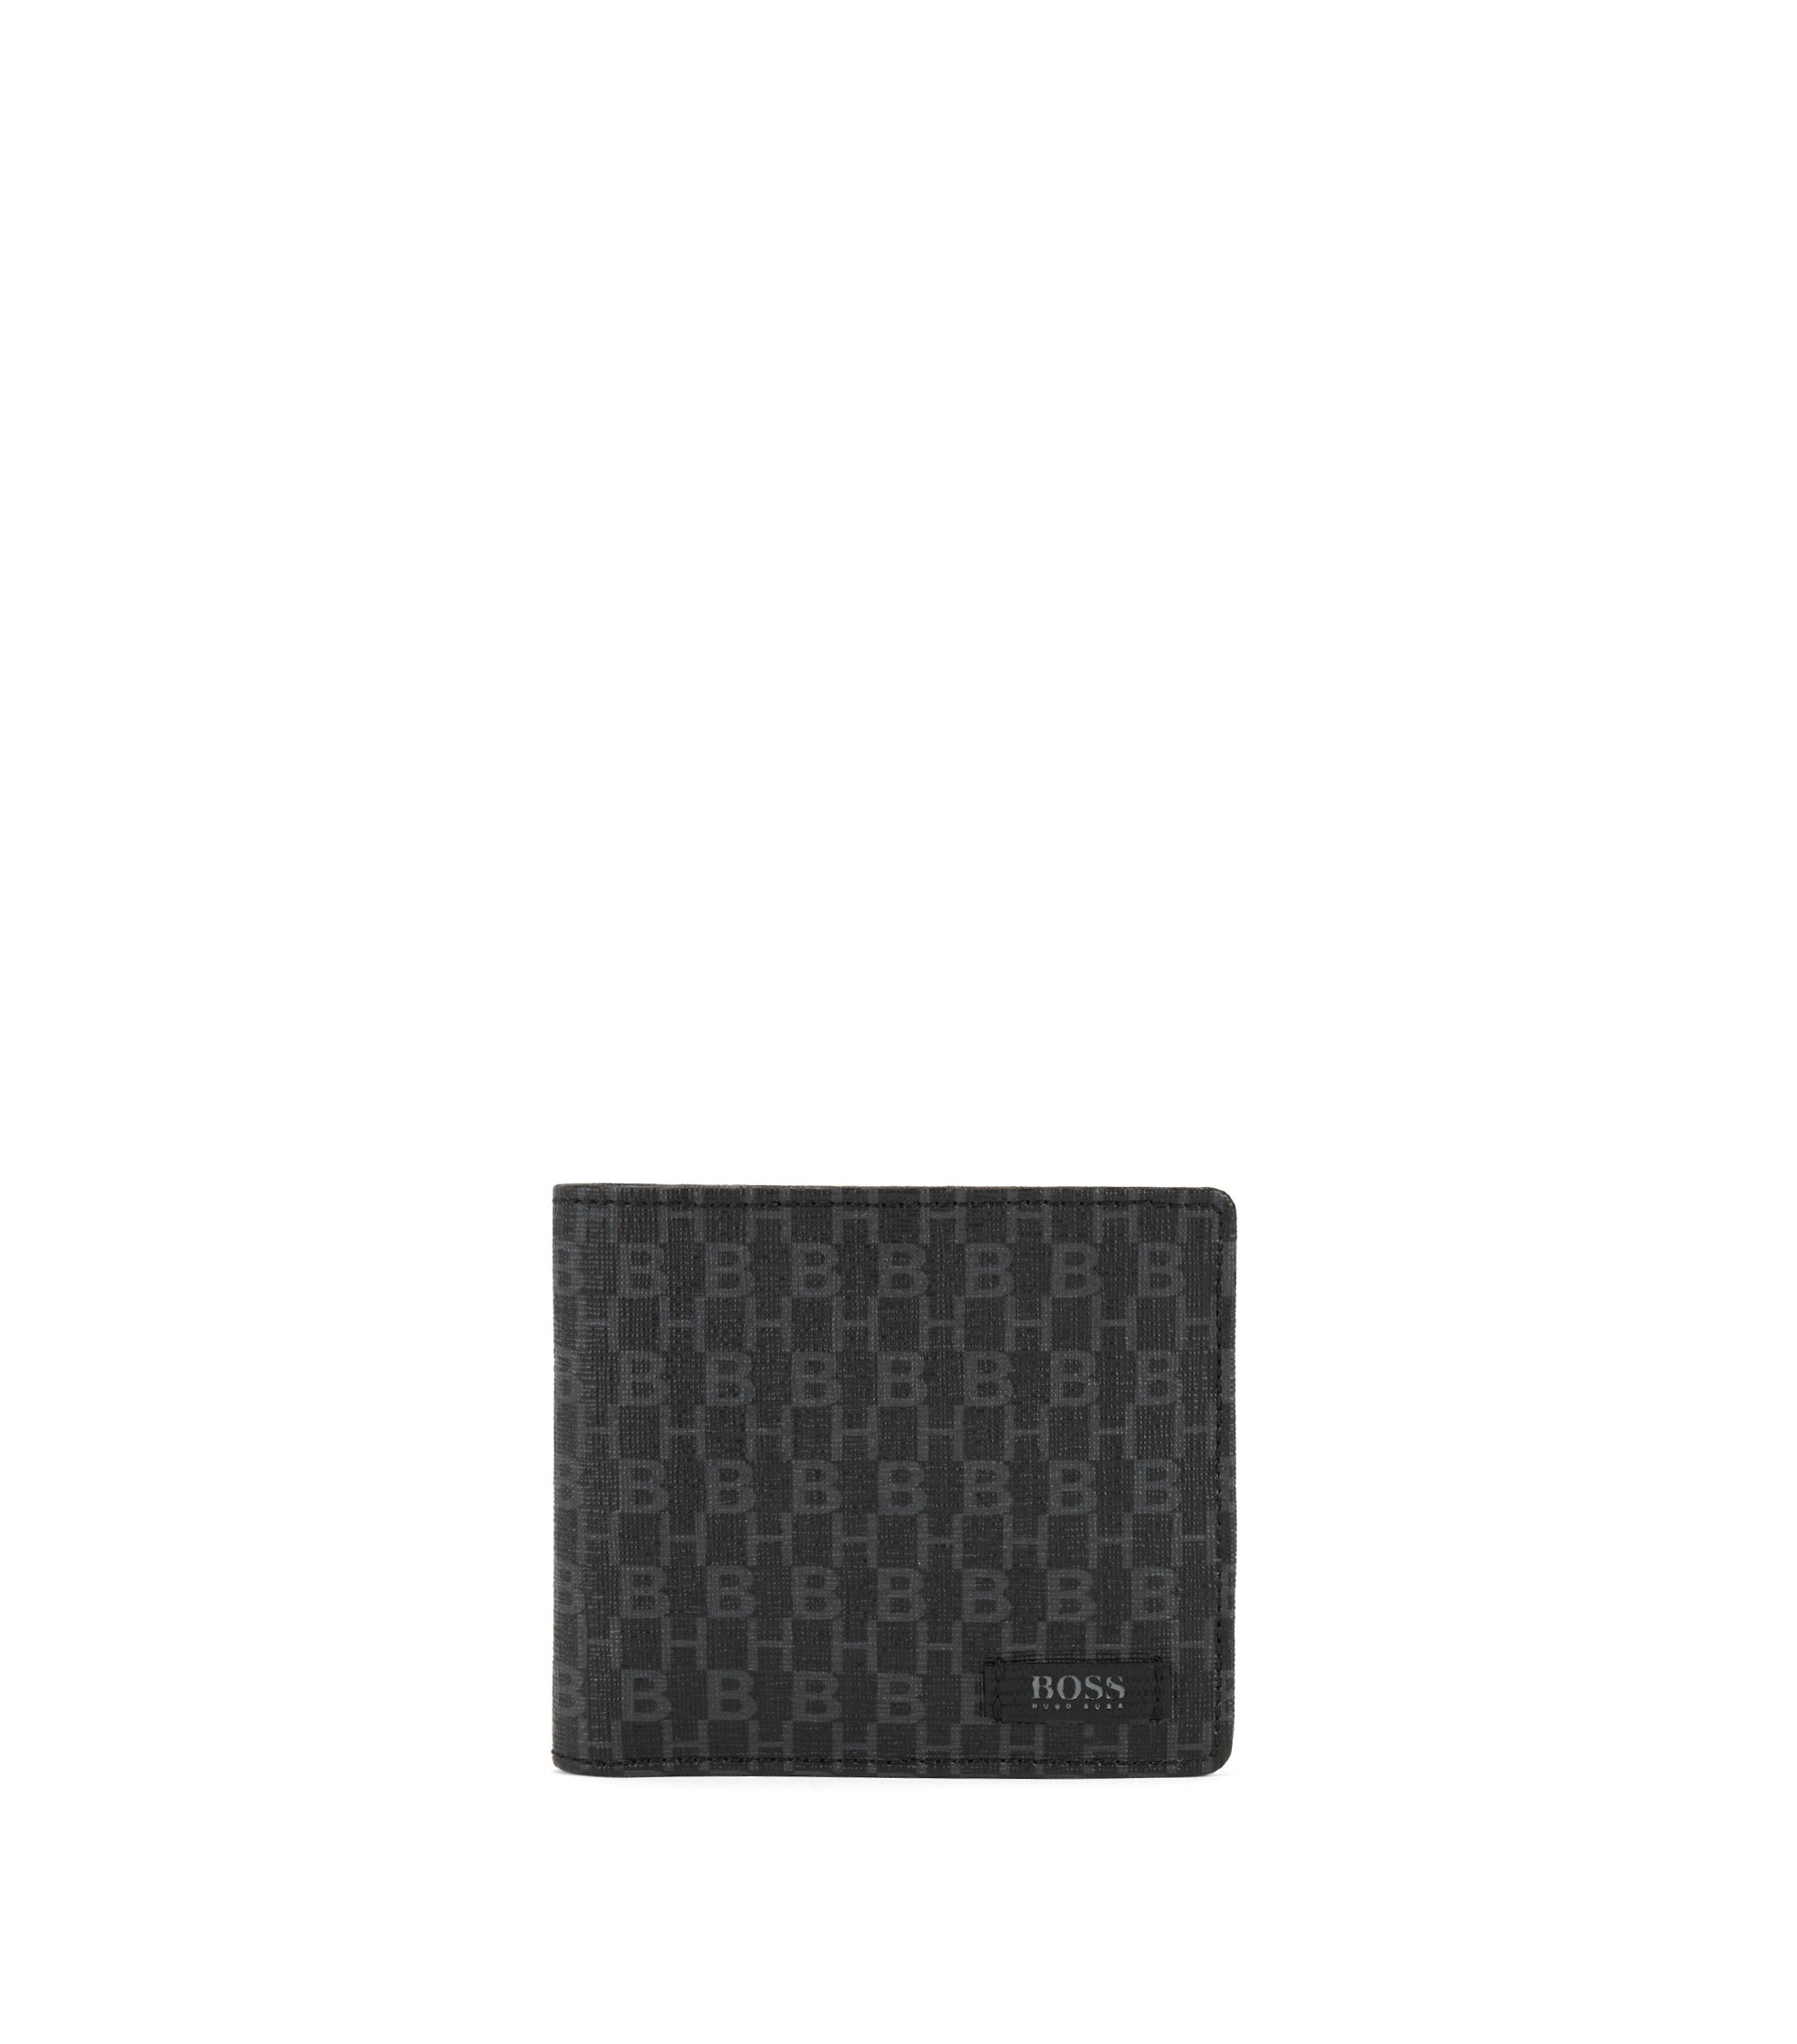 Coated-fabric billfold wallet with HB print, Black